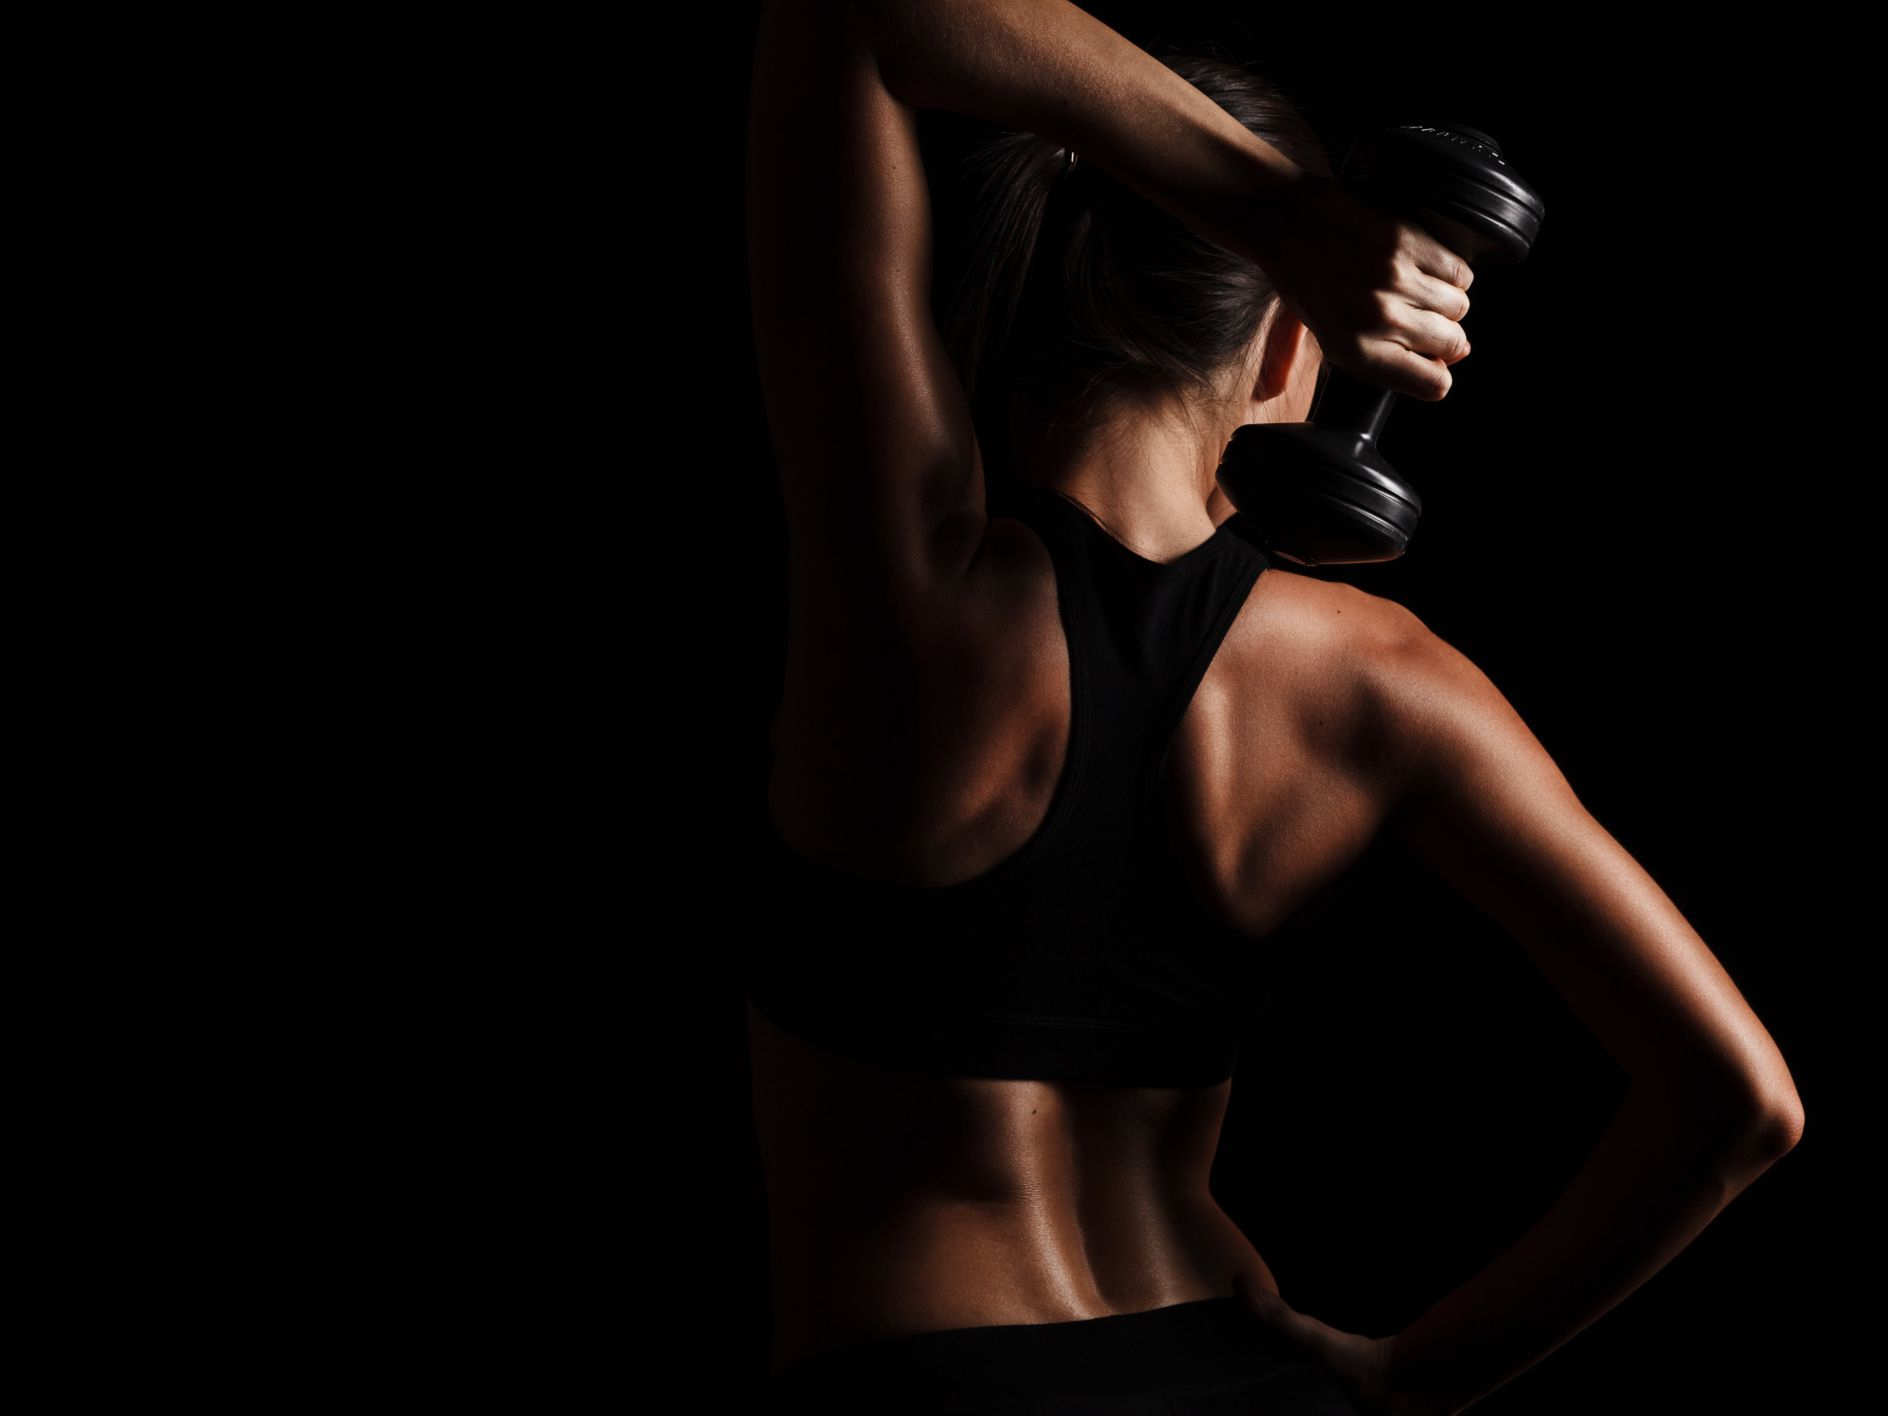 How to Sculpt a Strong Upper Body Without Bulking Up